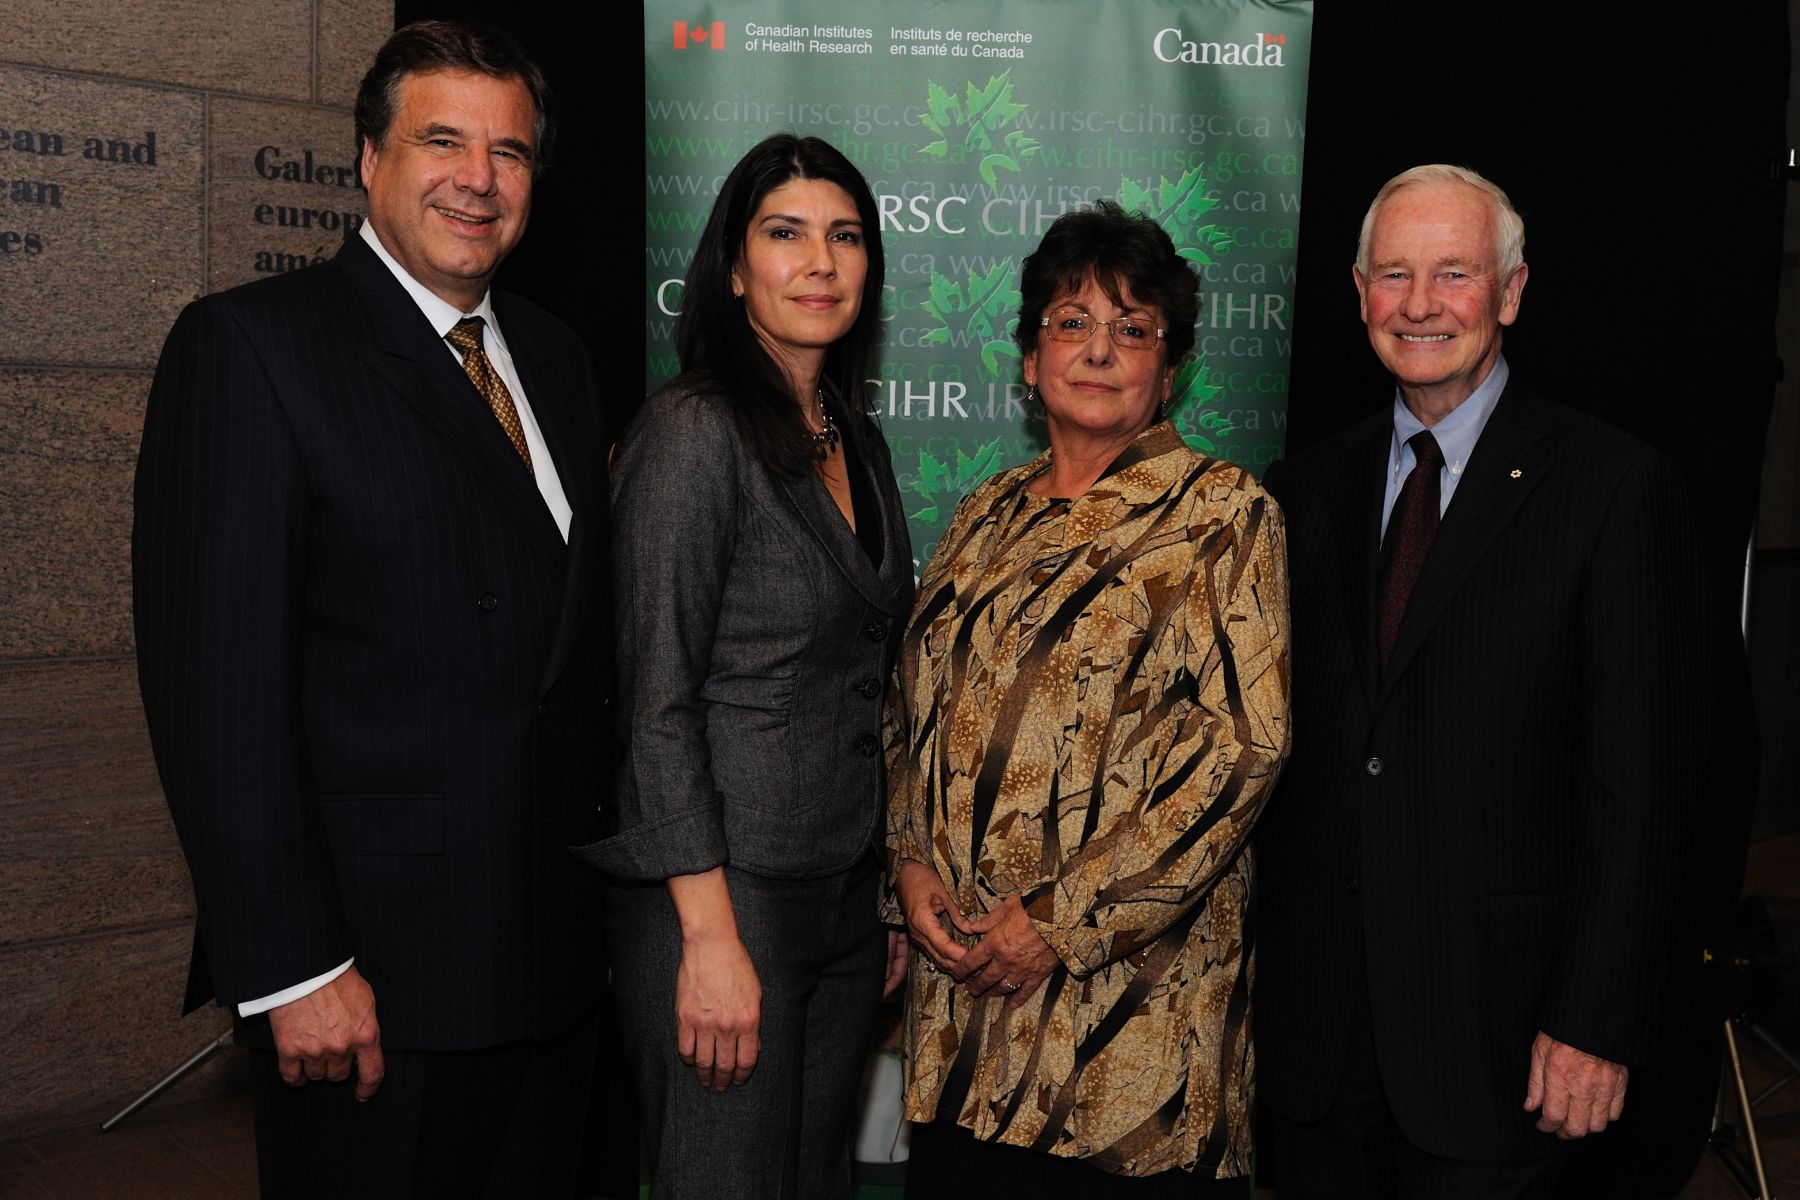 His Excellency and Dr. Beaudet with representatives from the Kahnawake Schools Diabetes Prevention Program, laureates of the Partnership Award.